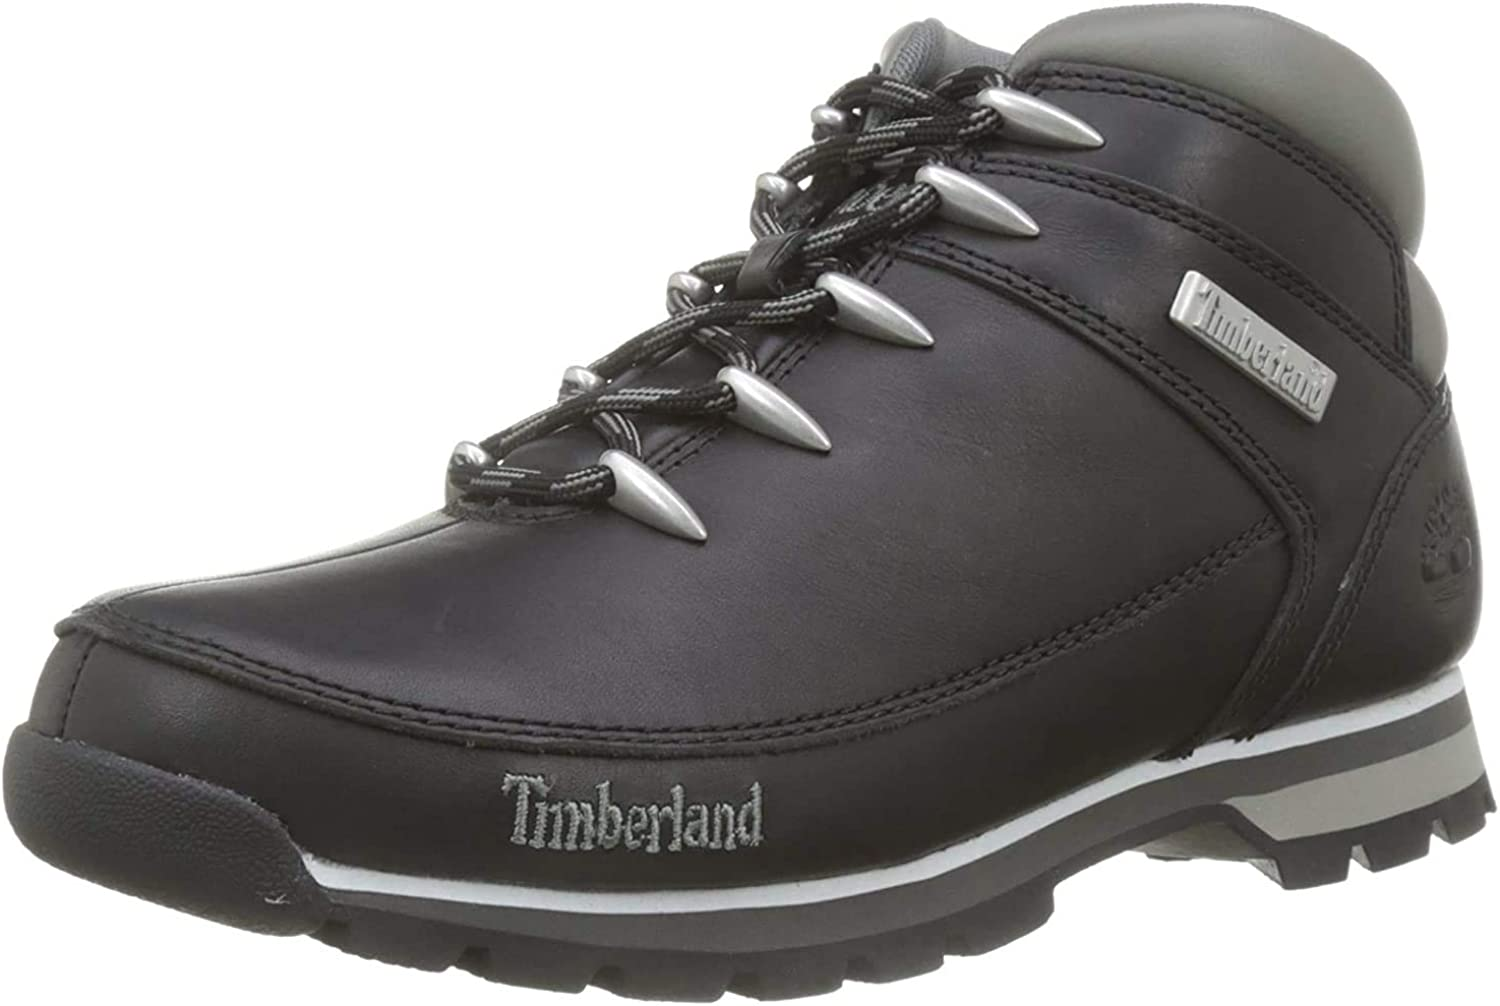 Timberland Men s Euro Sprint Black Smooth Leather Hiking-Boots 10 UK 10.5 D M US